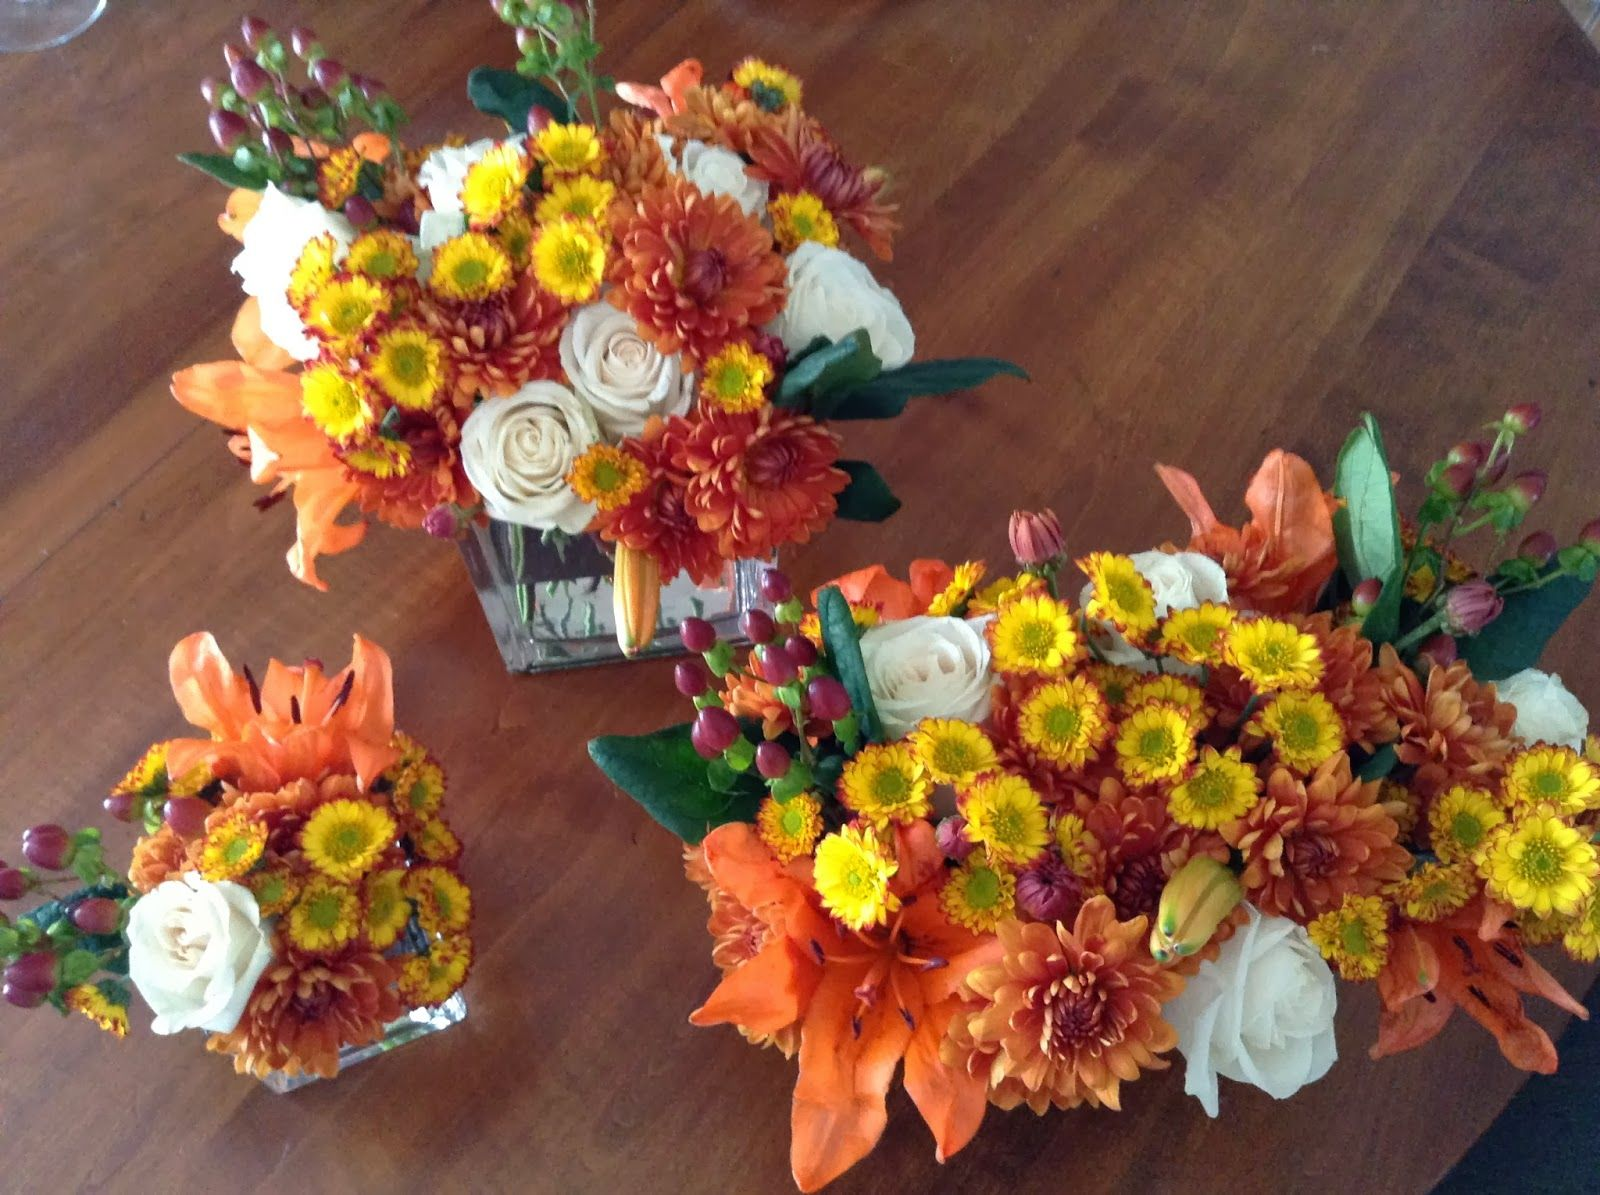 Cheap flower arrangements google search auntie toni birthday cheap flower arrangements google search izmirmasajfo